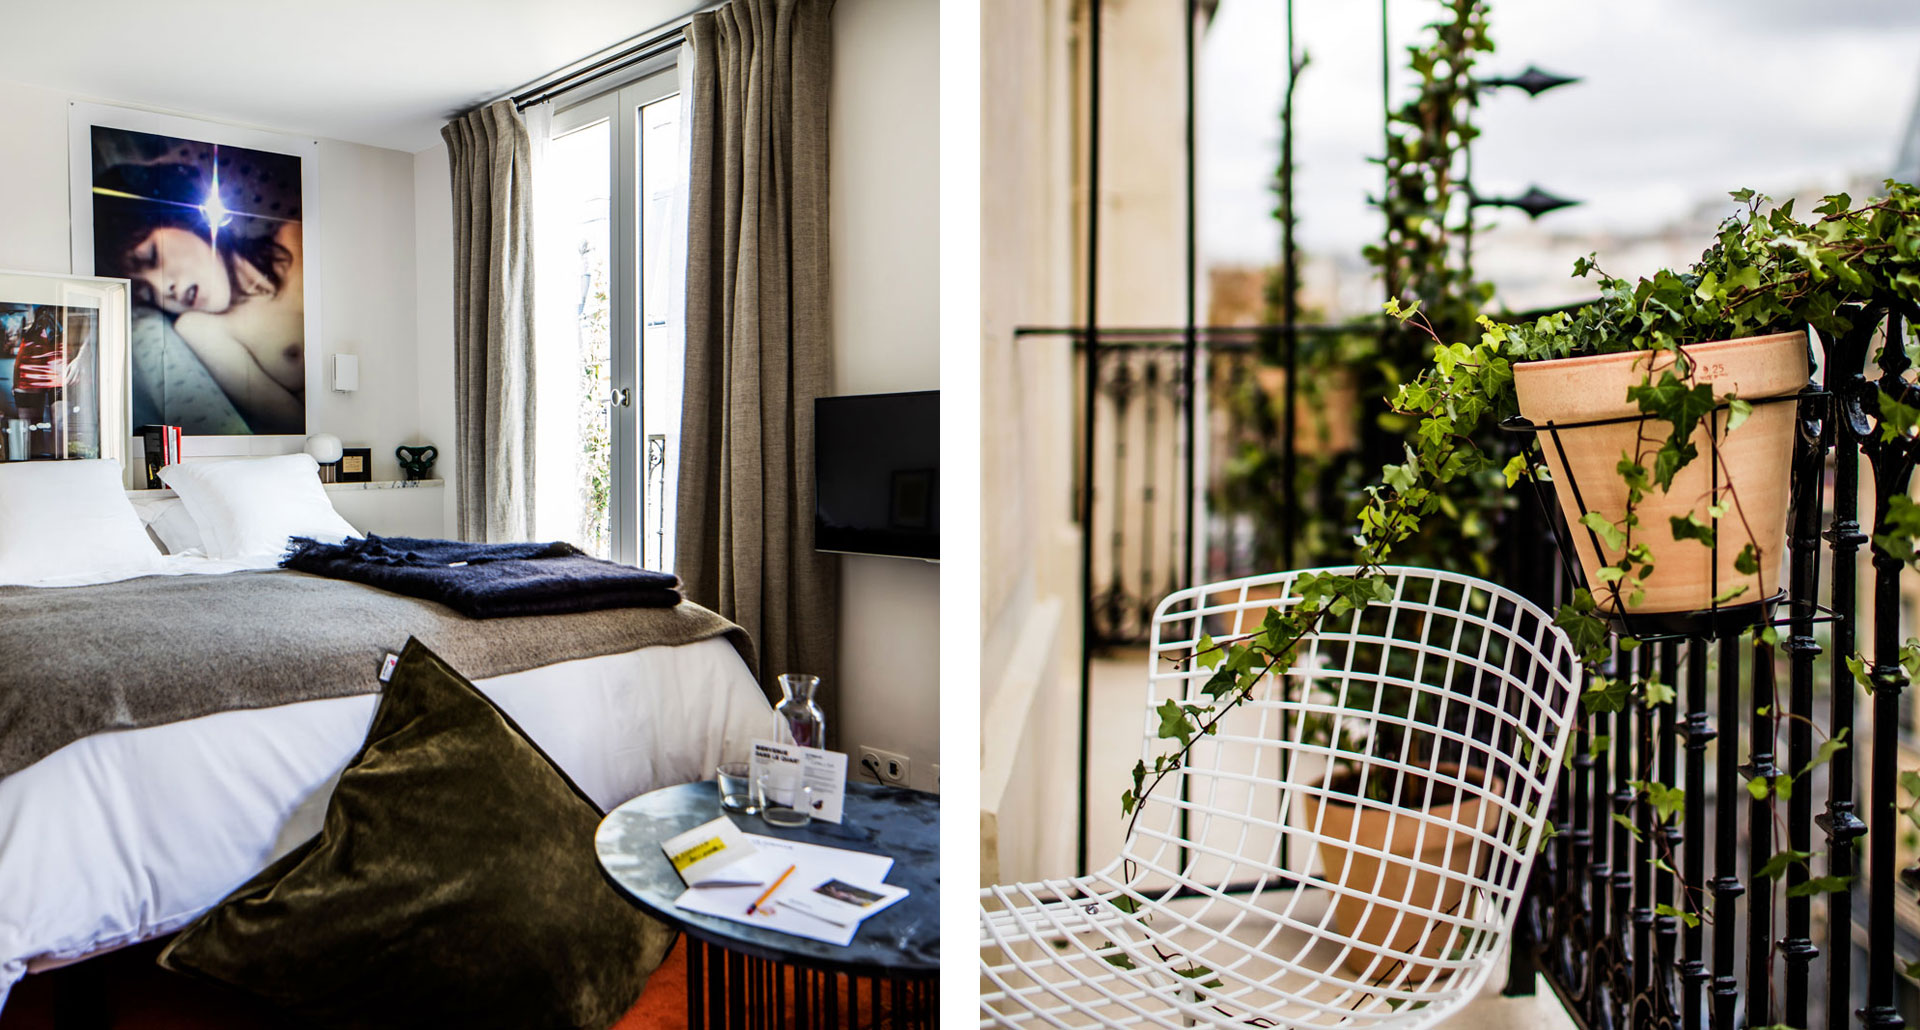 Le Pigalle Paris - boutique hotel in Paris